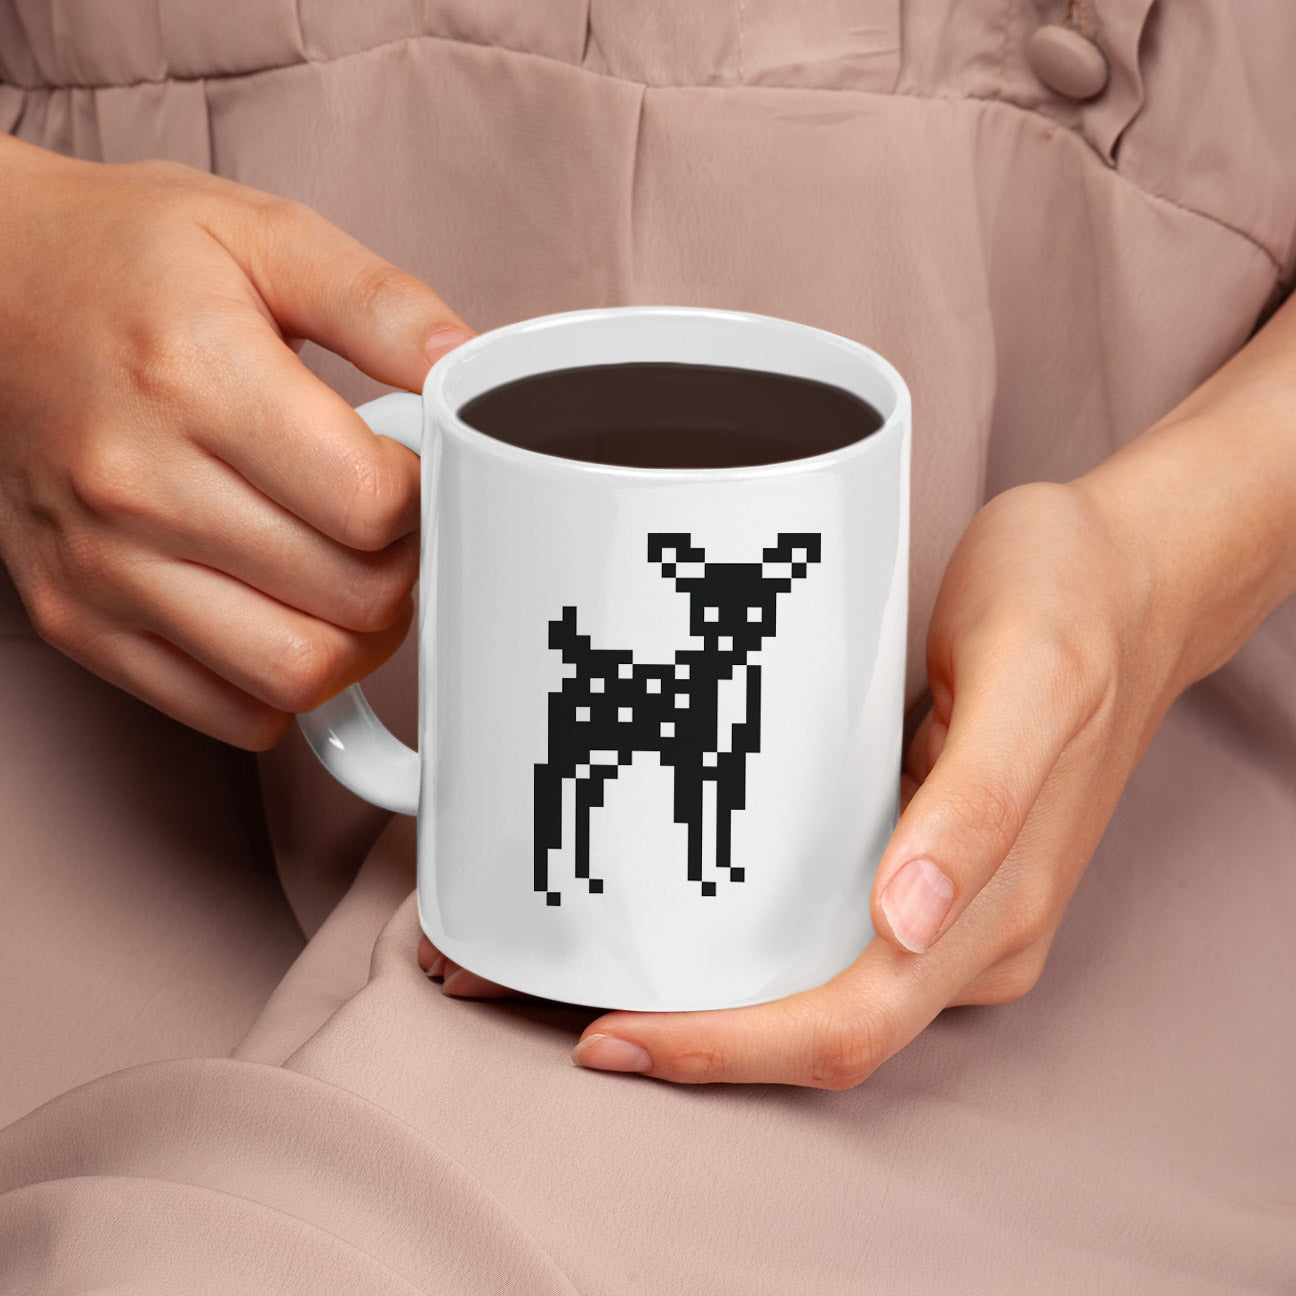 8-Bit Deer Mug - Space Lake